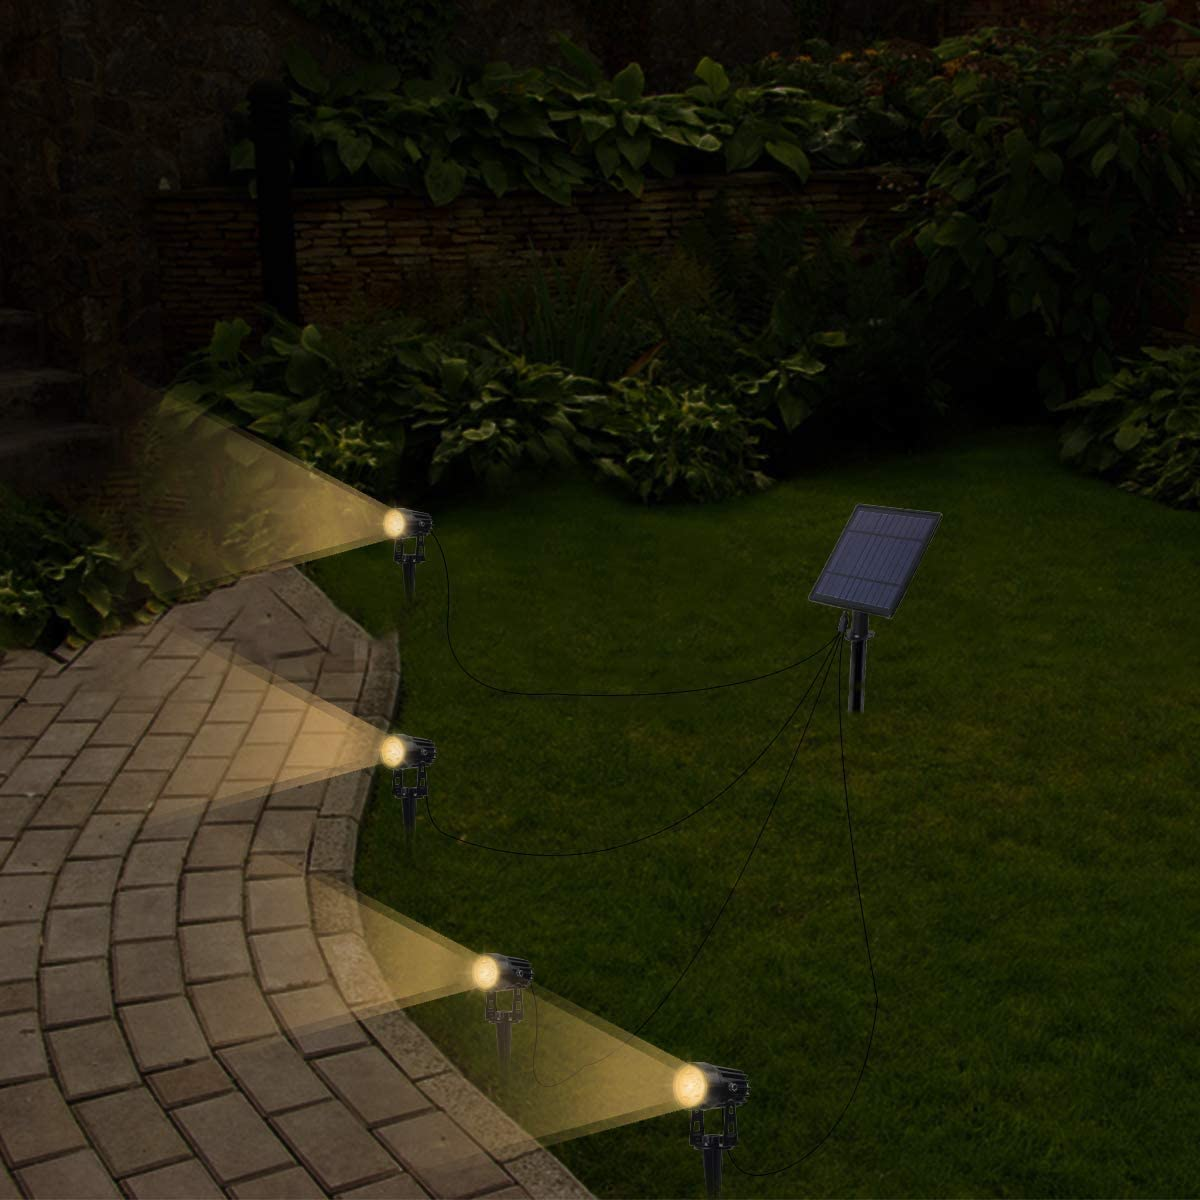 Pack of 2 Solar Outdoor Lights Adjustable 7 Led Color Changing Solar Garden Spotlight 2-in-1 Waterproof Wall Light Auto On//Off for Yard Pathway Lawn Patio Landscape Tree